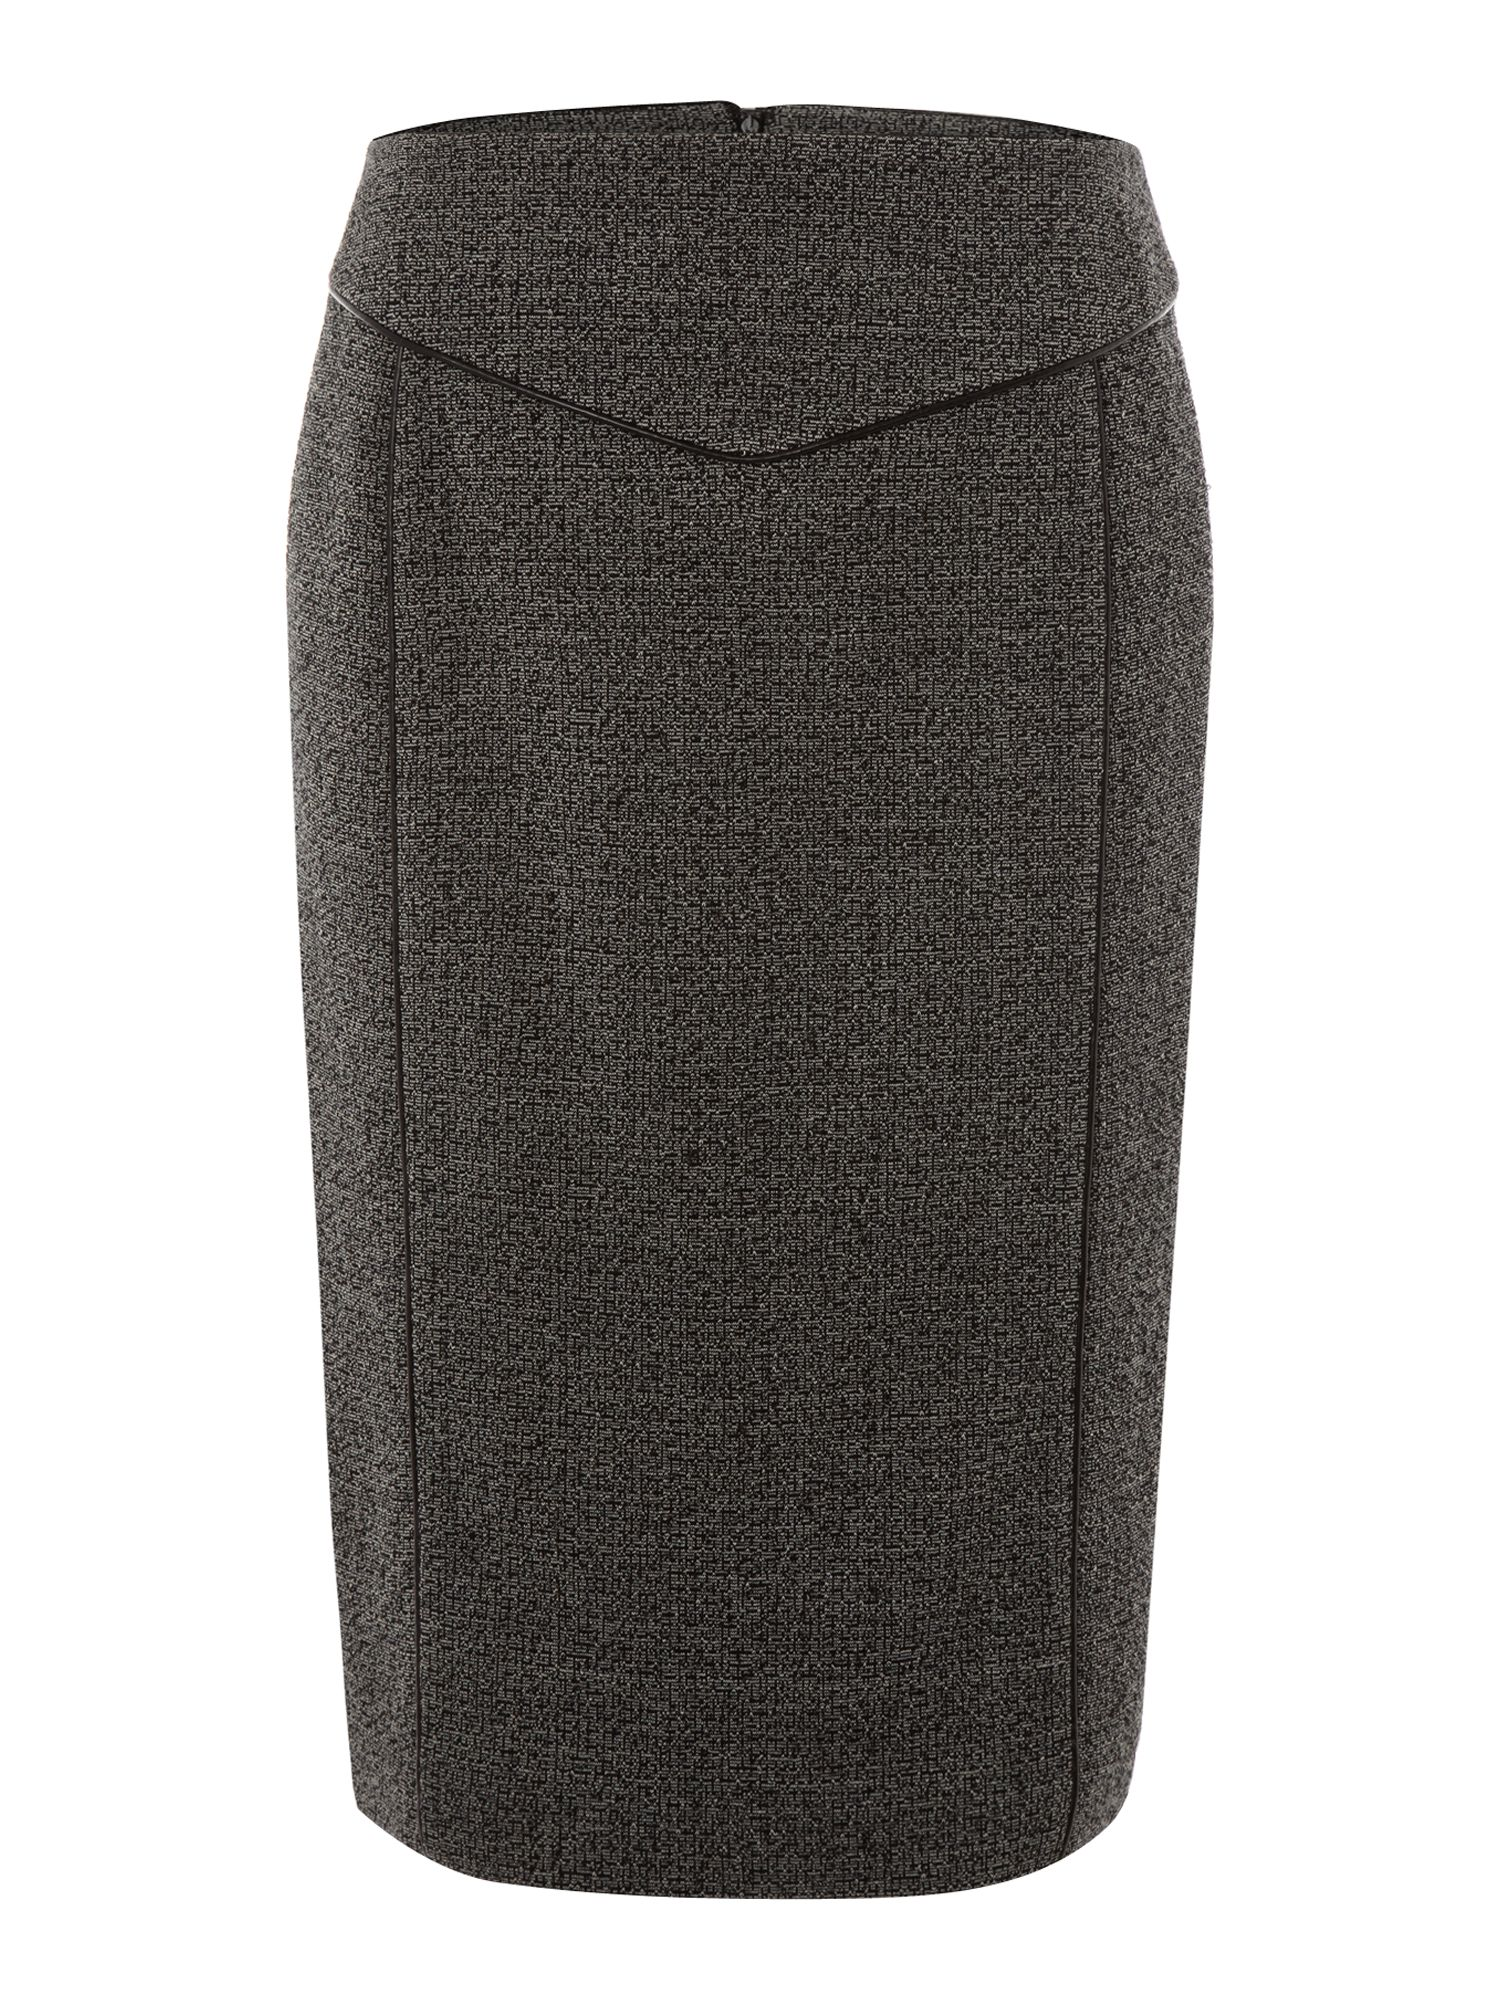 Tweedy ponte skirt